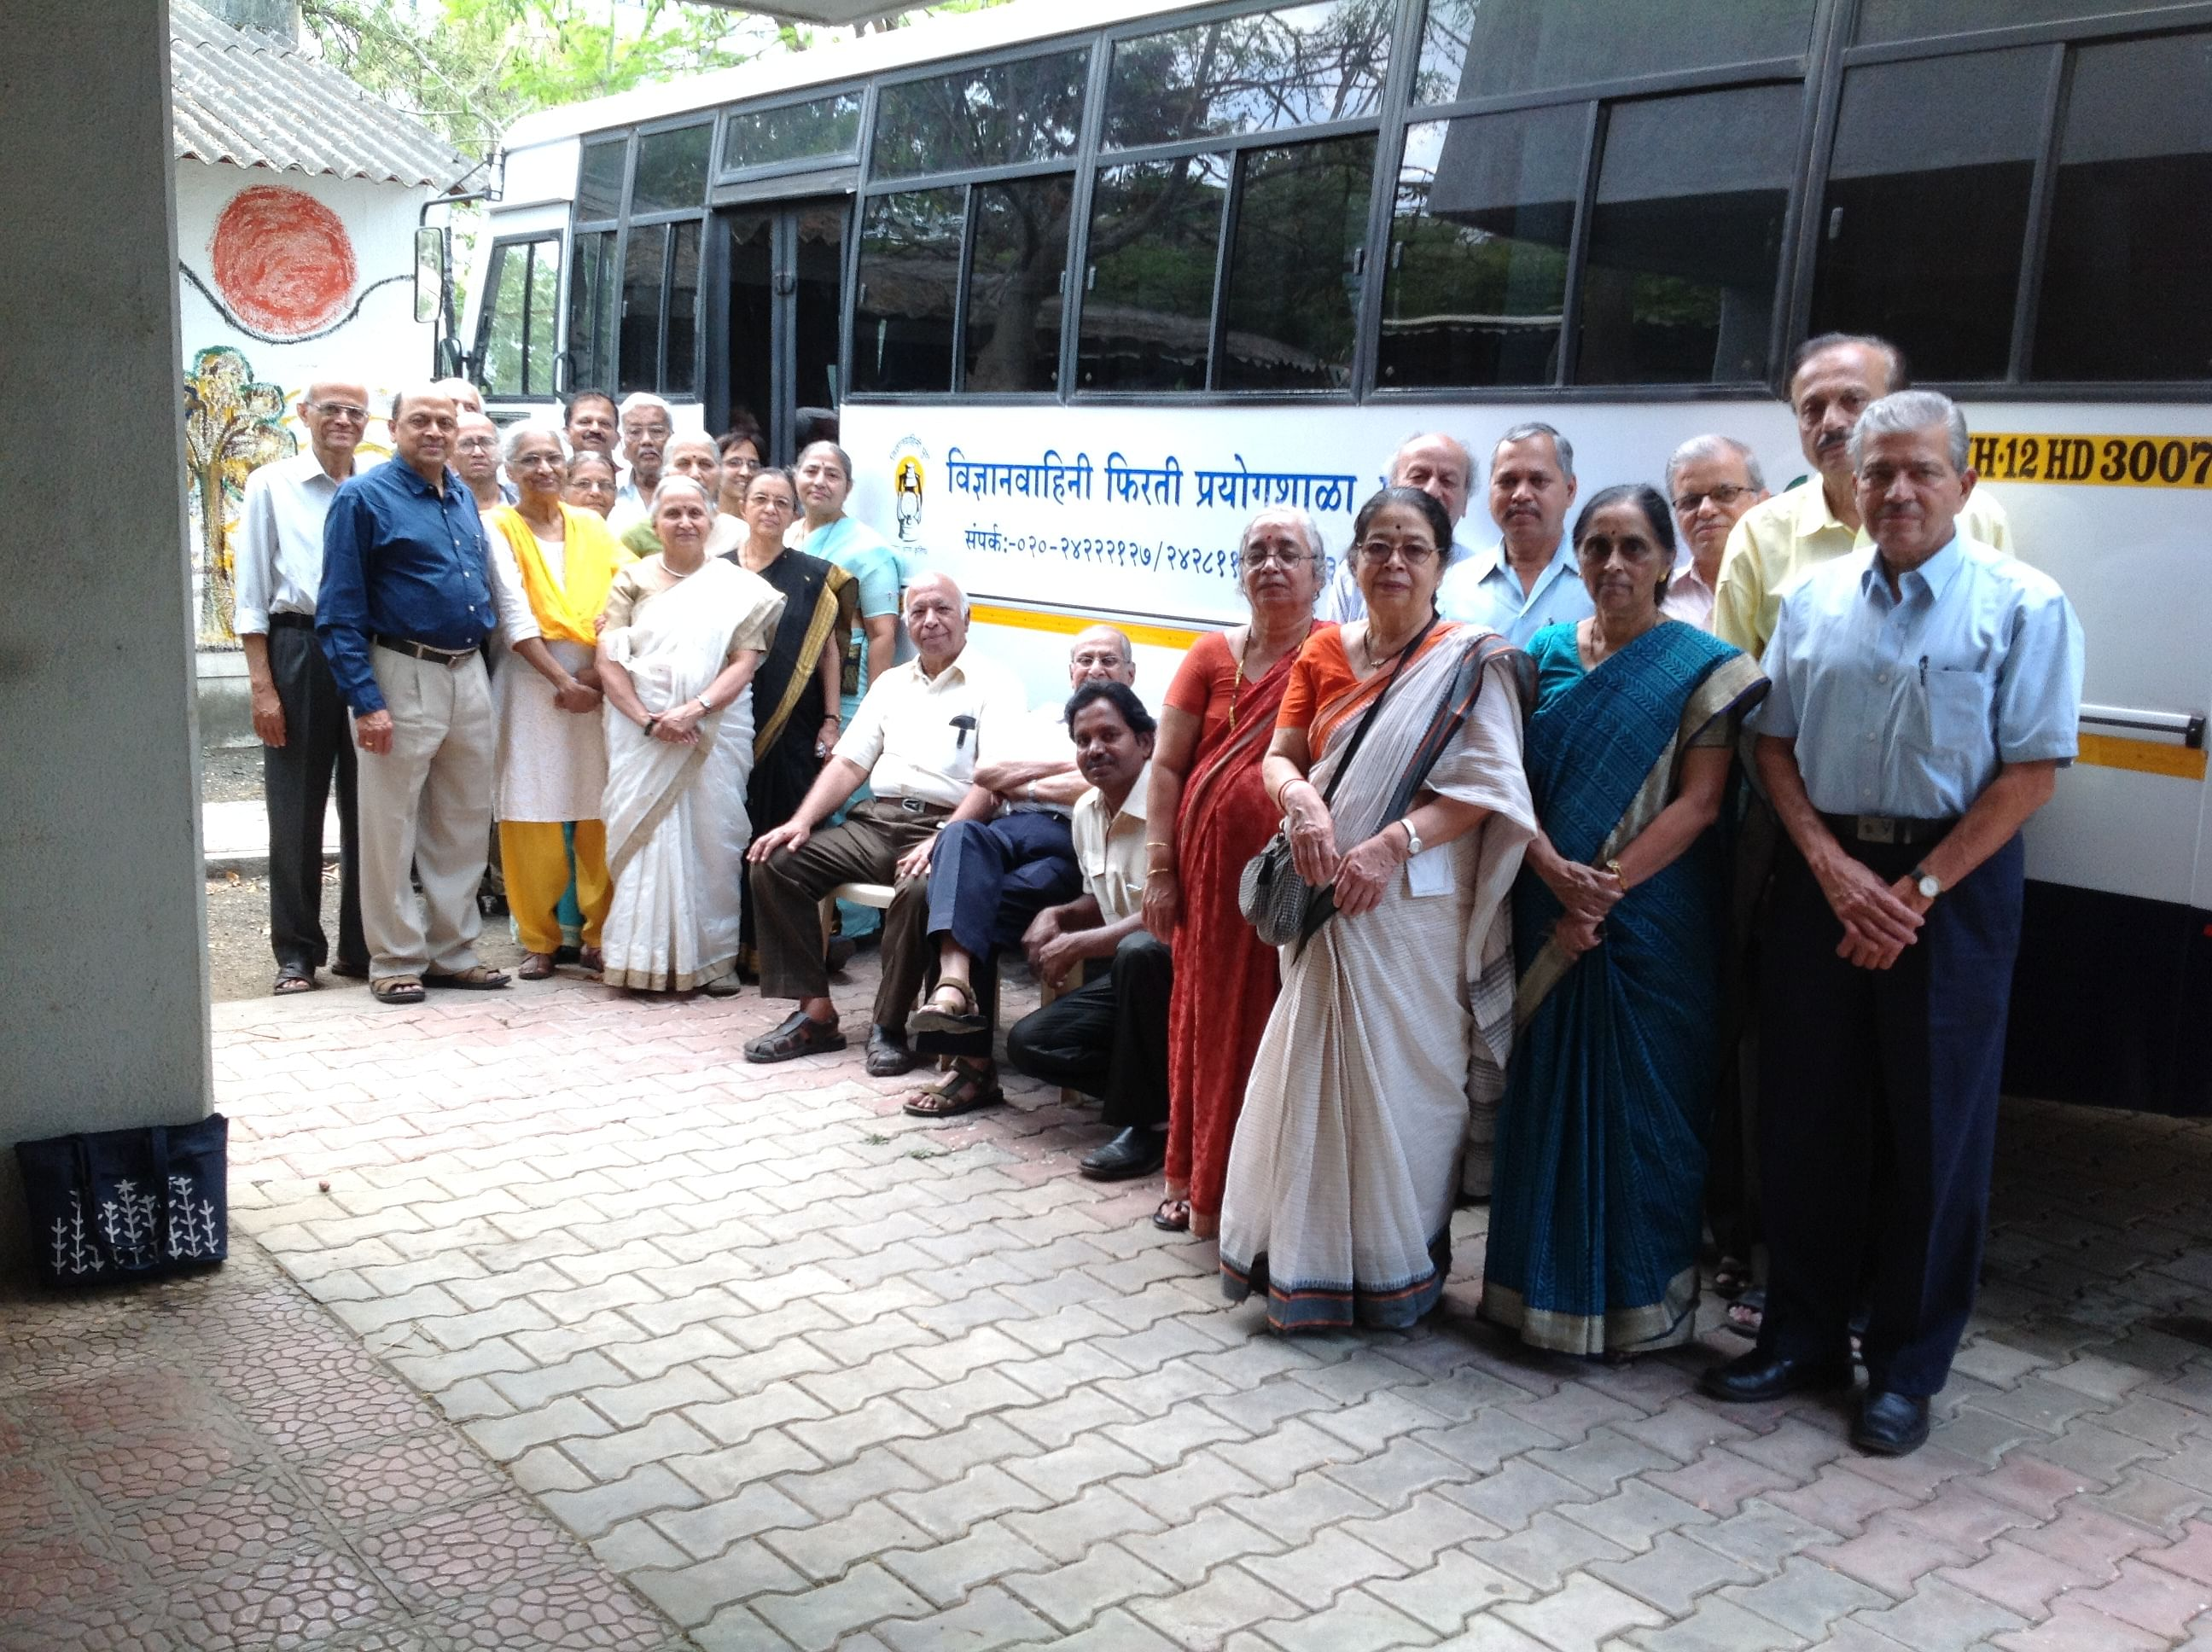 The Vidnyan Vahini team with the 'Mobile Science laboratory'